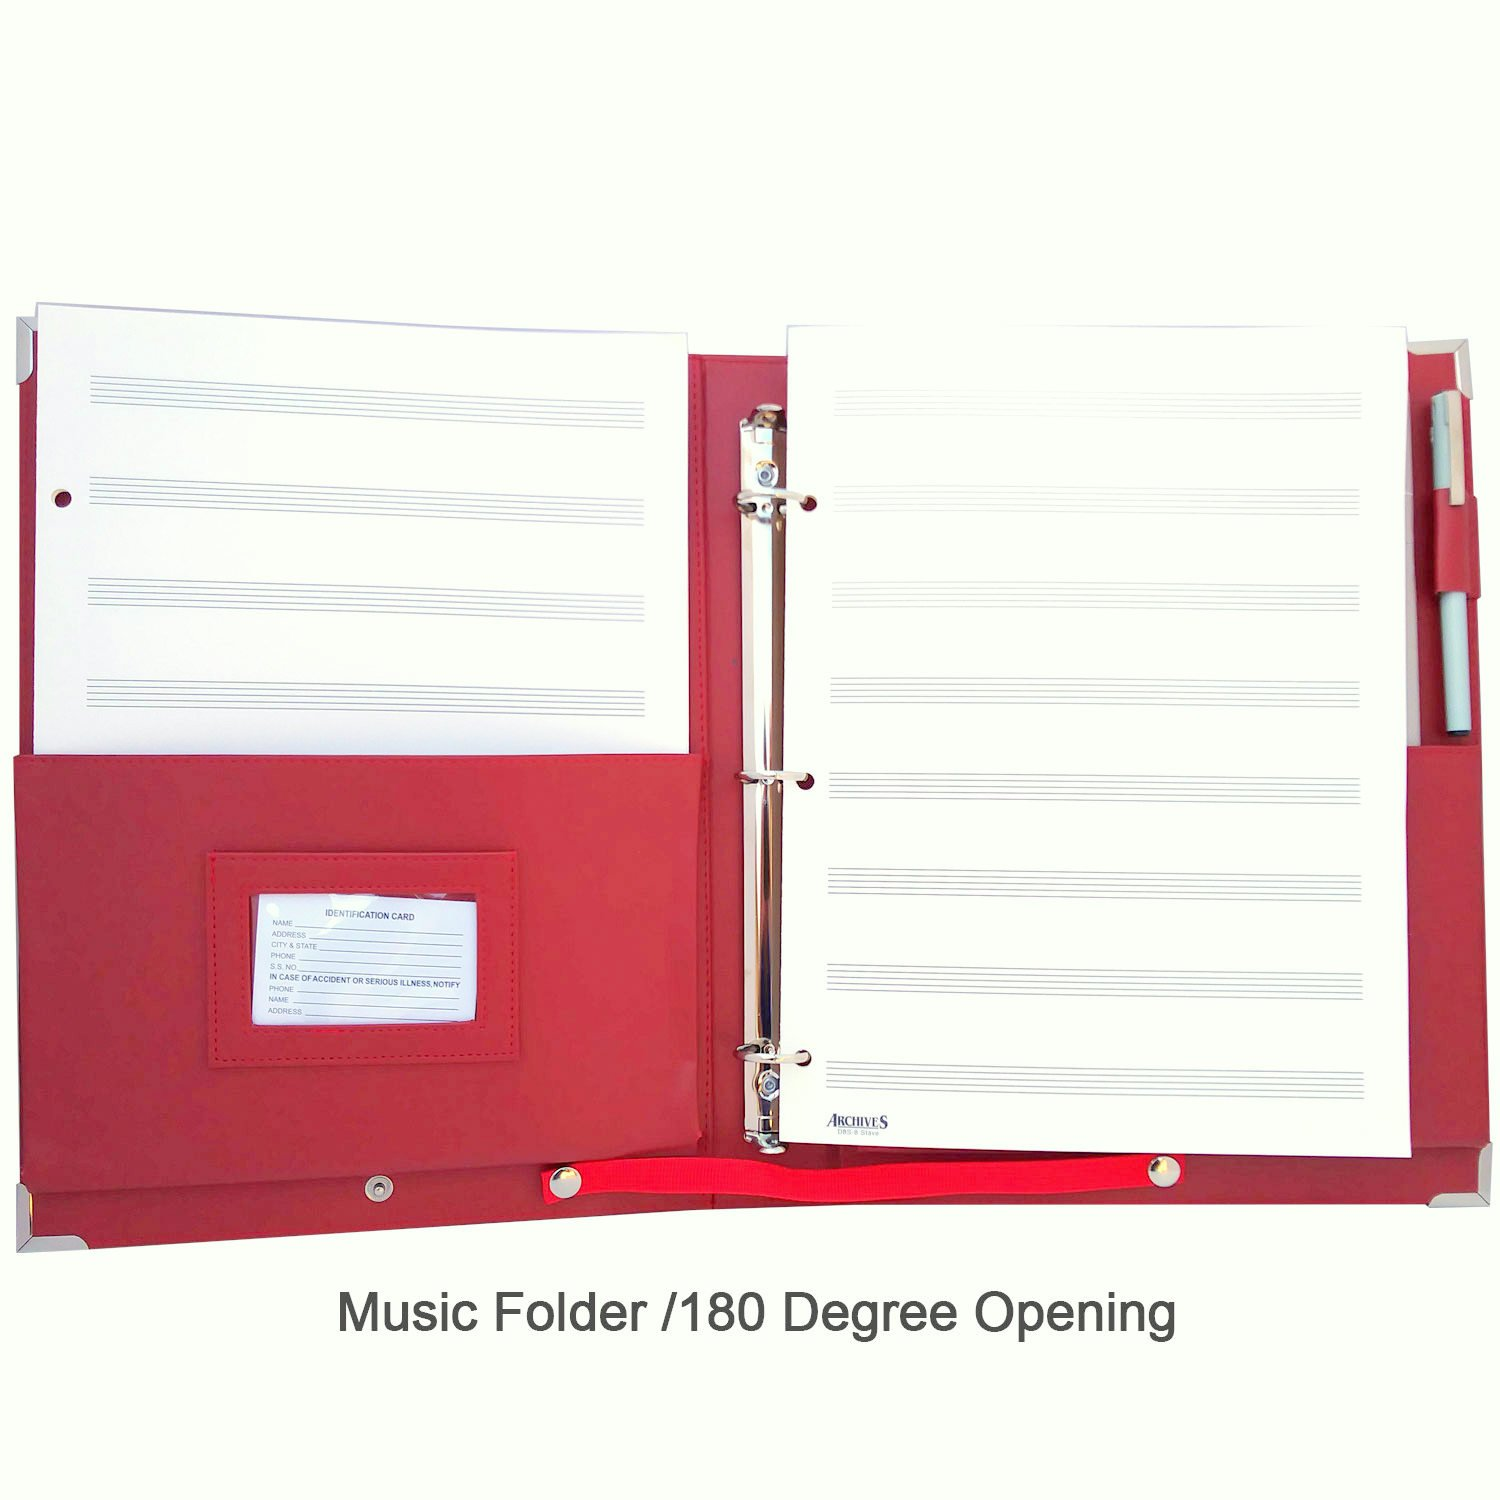 MSP Sheet Music/Choir Folder 10 x 13.5'' with Detachable Strap and 3 Ring Binders (Red)